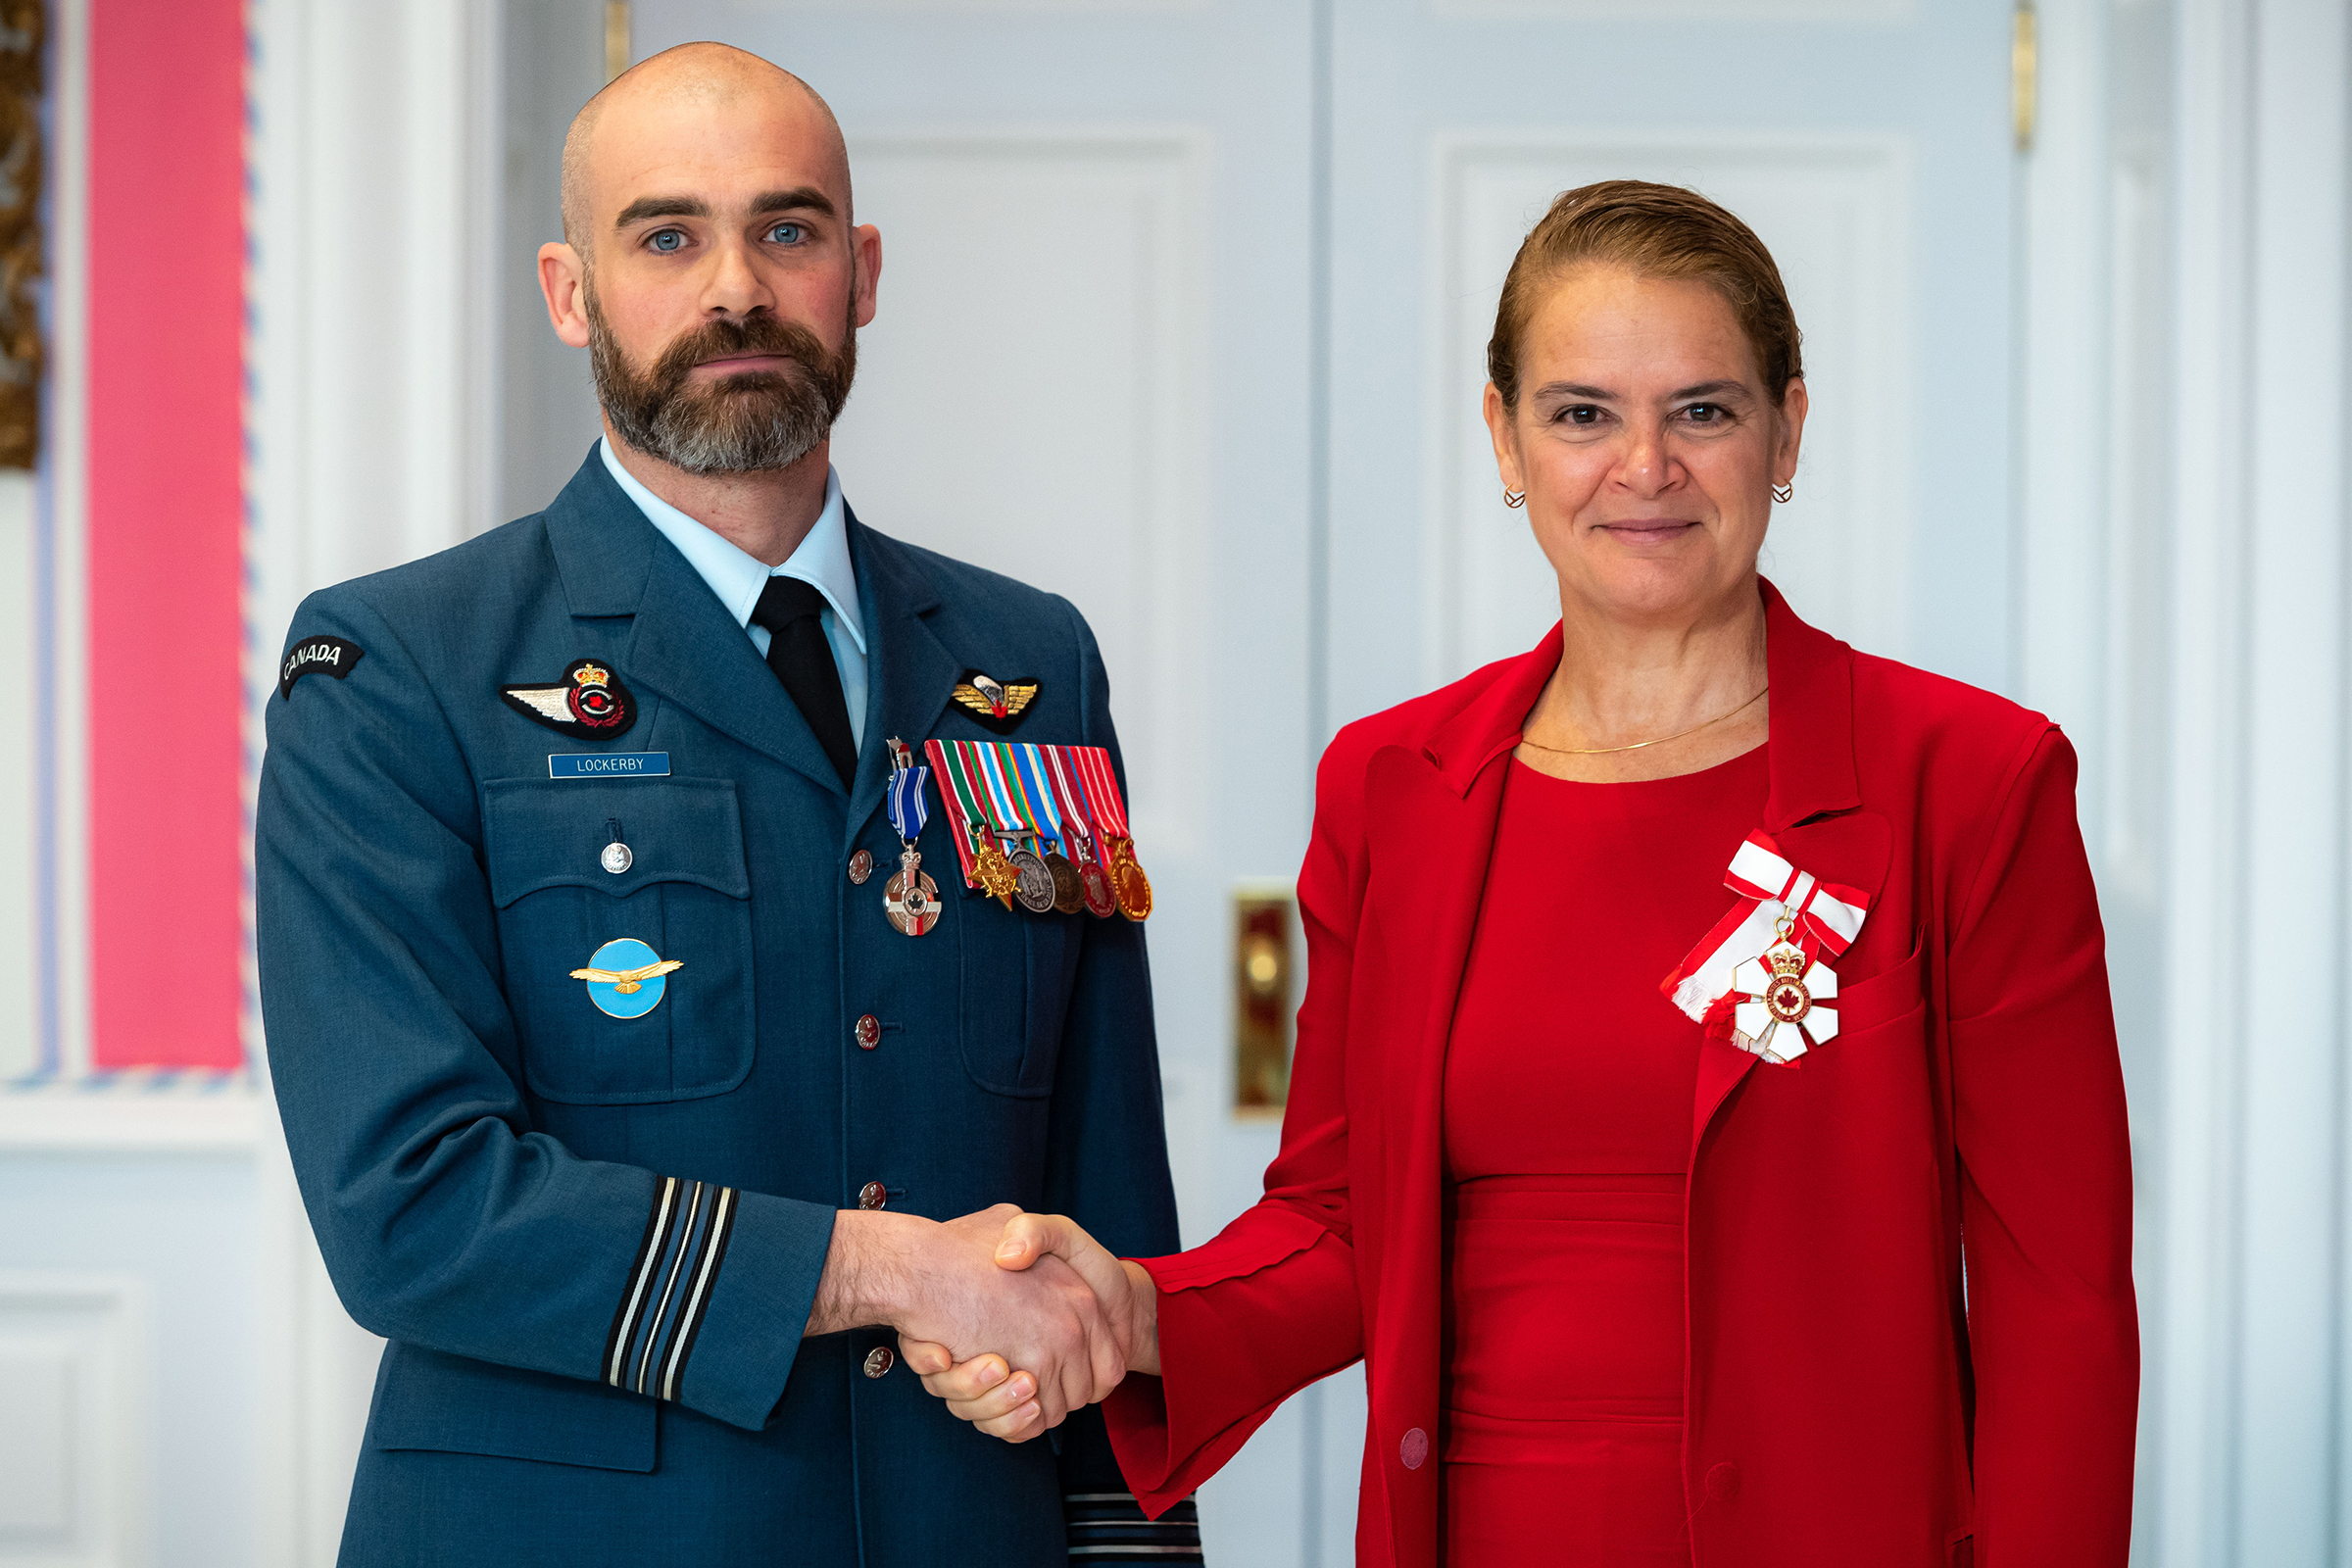 Governor General and Commander-in-Chief of Canada Julie Payette presents Major Alan Anderson Lockerby with the Meritorious Service Medal (Military Division) on November 12, 2019. PHOTO: Master Corporal Mathieu Gaudreault, GG06-2019-0257-075, © OSGG